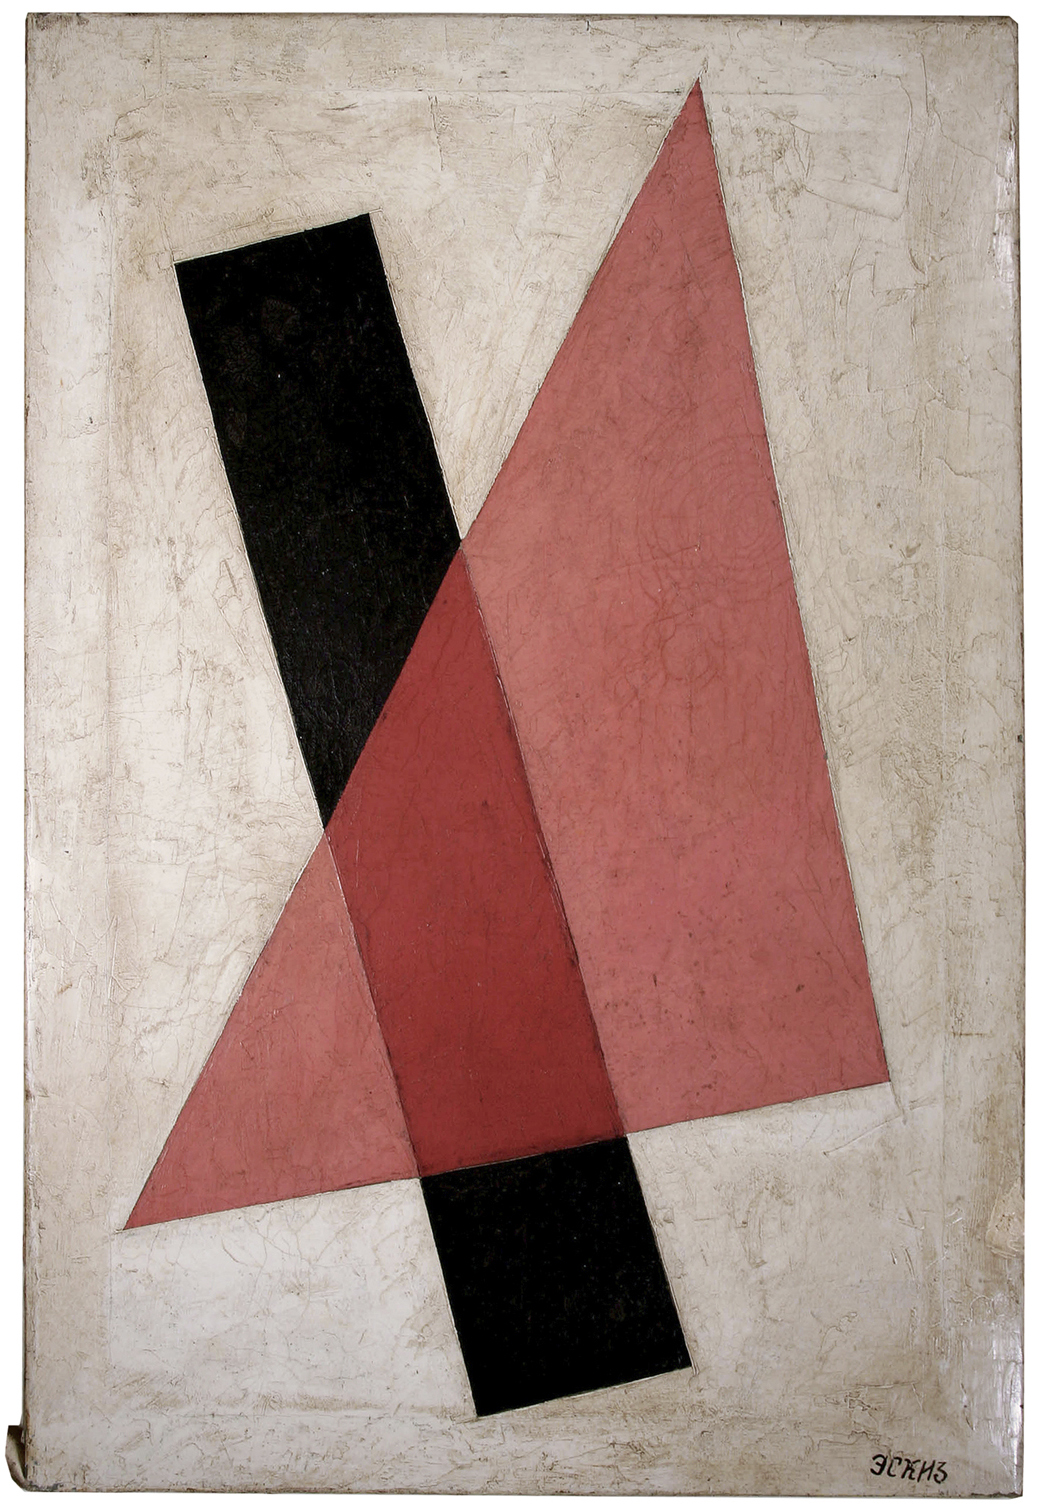 """Unattributed. Unsigned. In the style of Lyubov Popova.Text in Russian, lower right front corner, translates to """"Sketch"""".Oil on Canvas. 60.5 x 40 cm."""